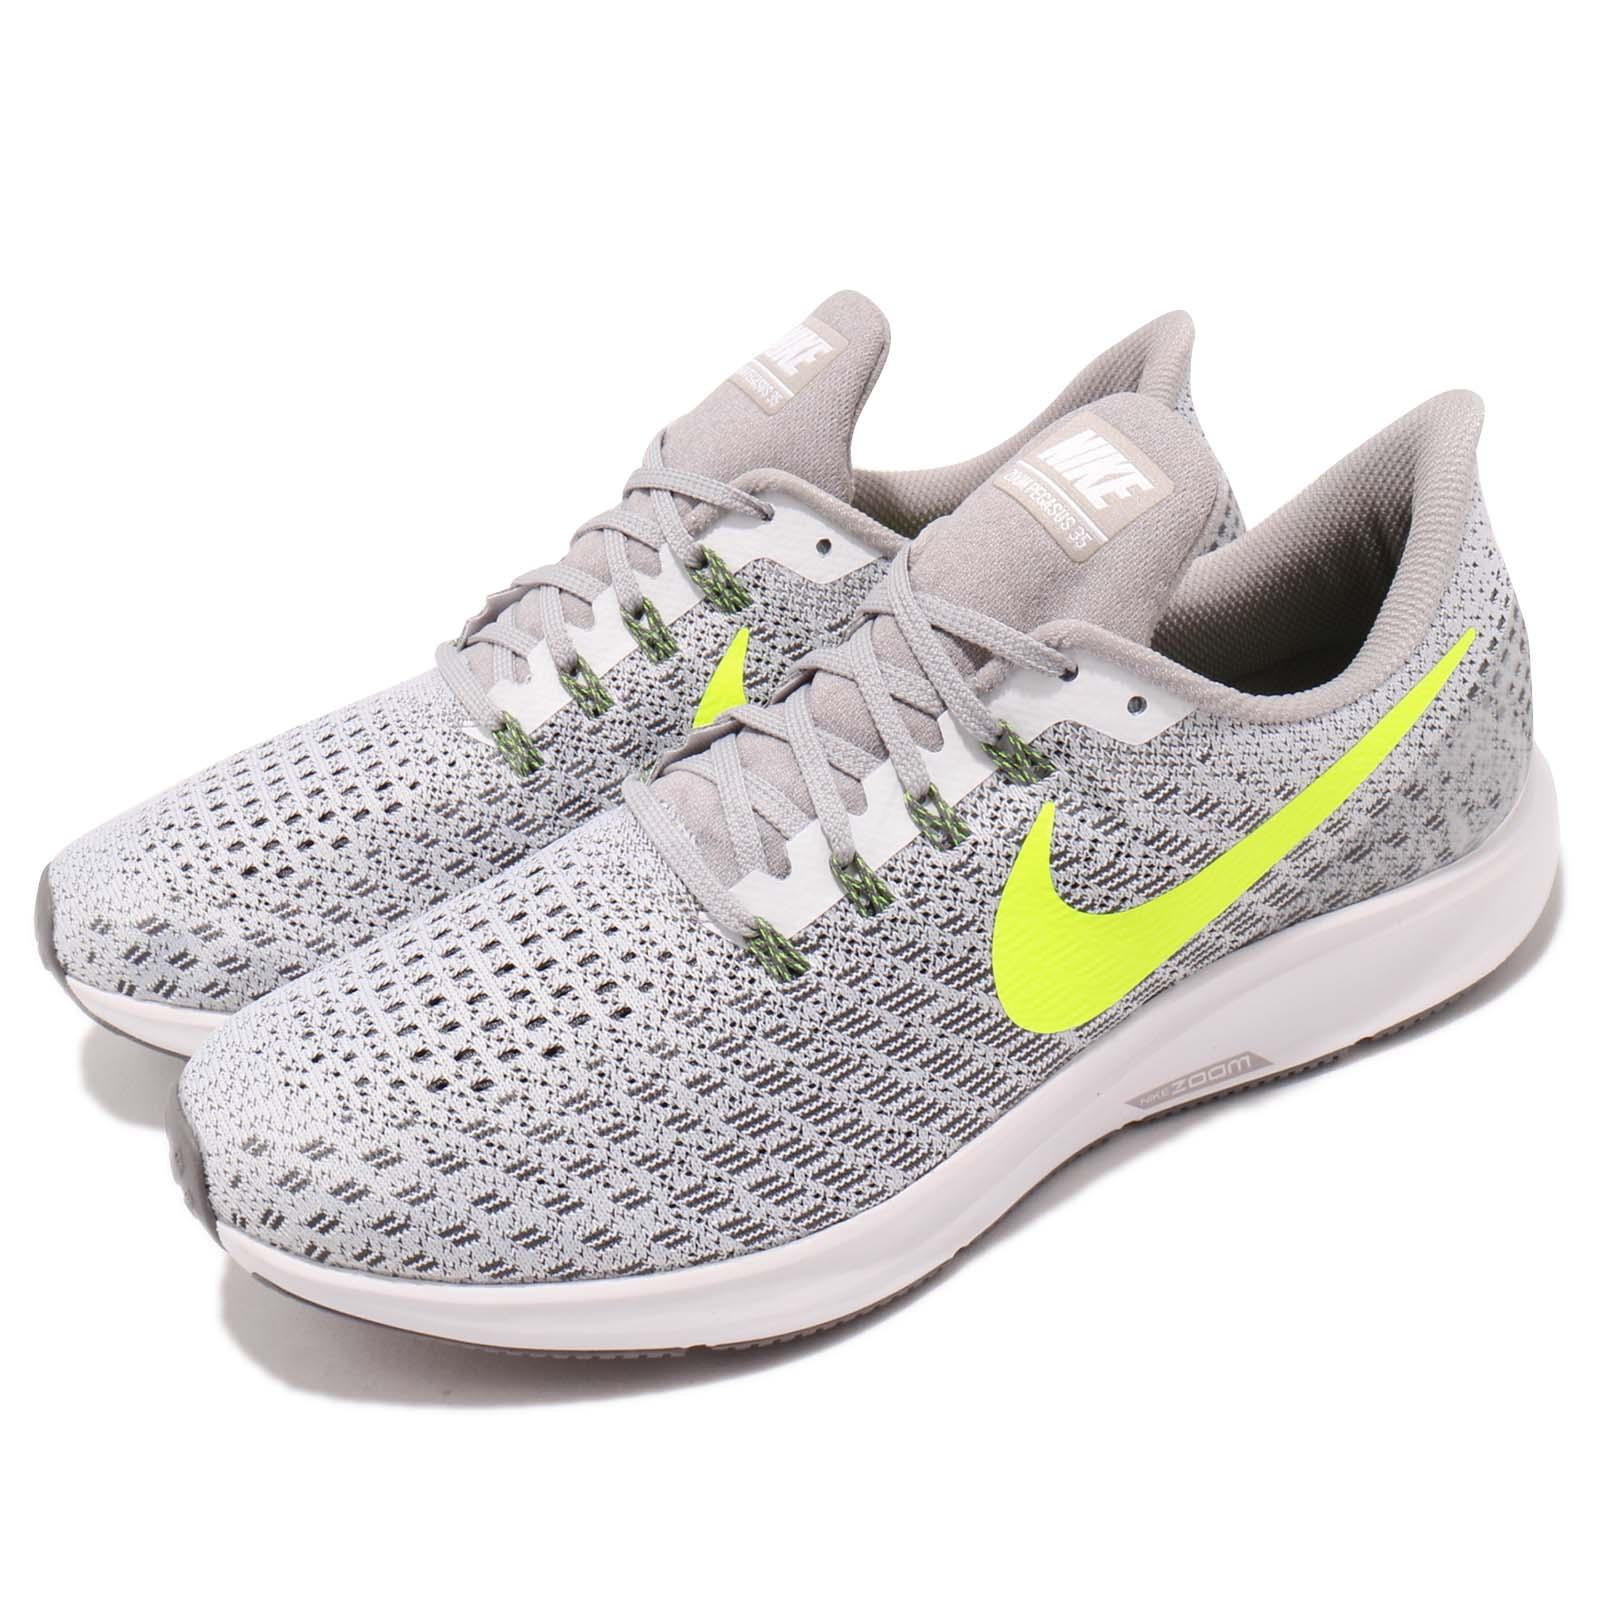 6d6f67357265 Details about Nike Air Zoom Pegasus 35 White Volt Grey Men Running Shoes  Sneakers 942851-101